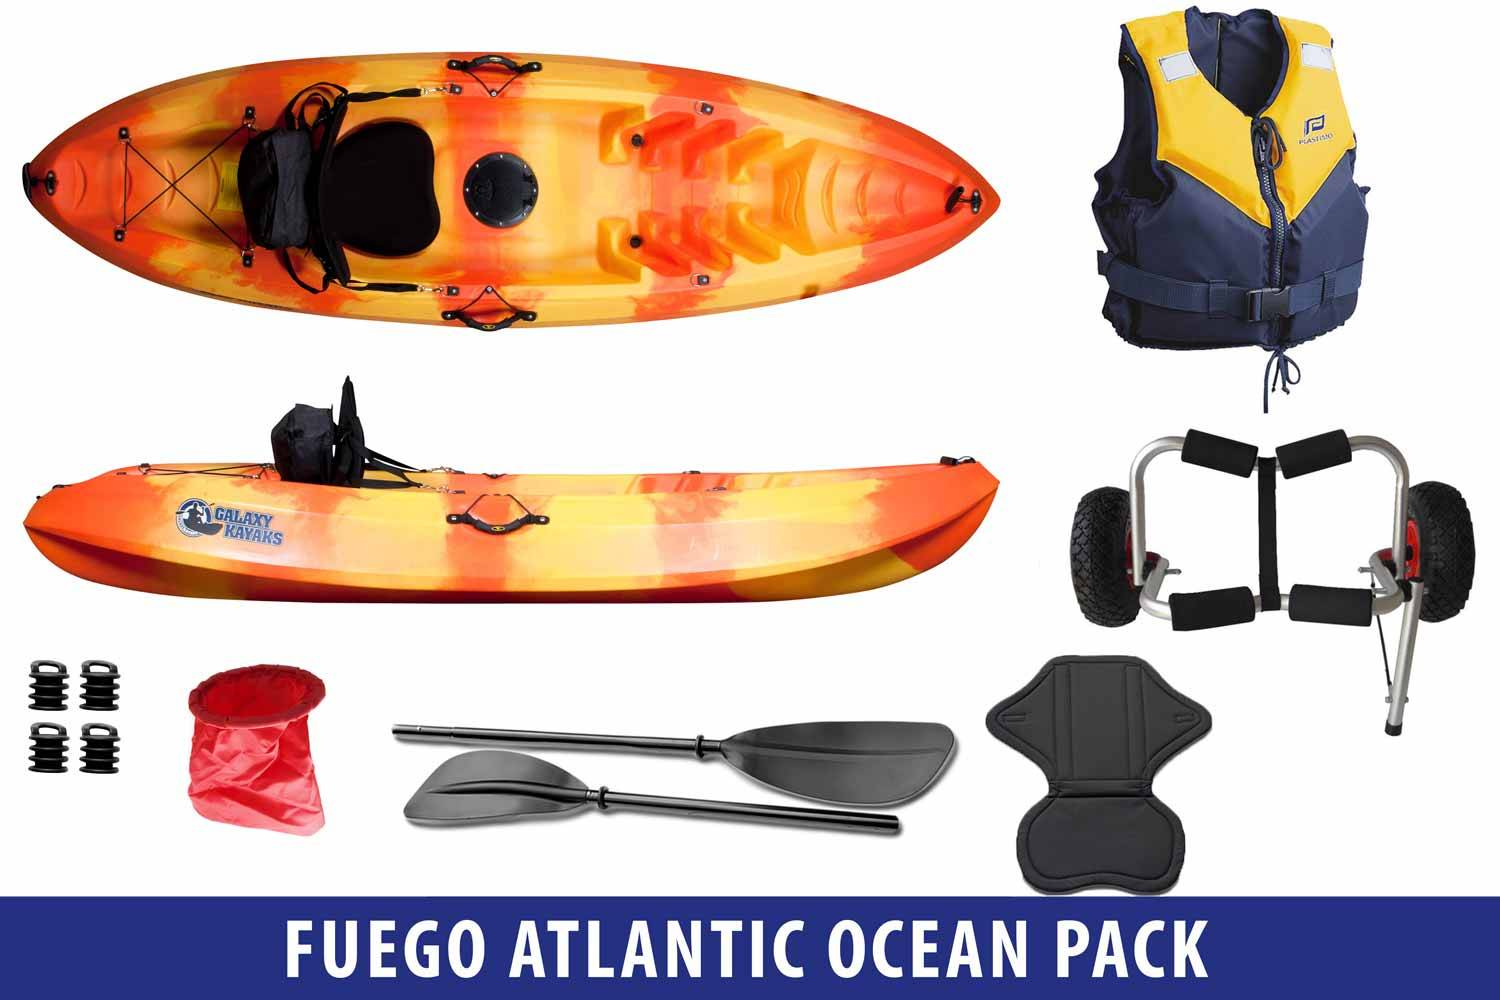 Fuego Atlantic Ocean Pack